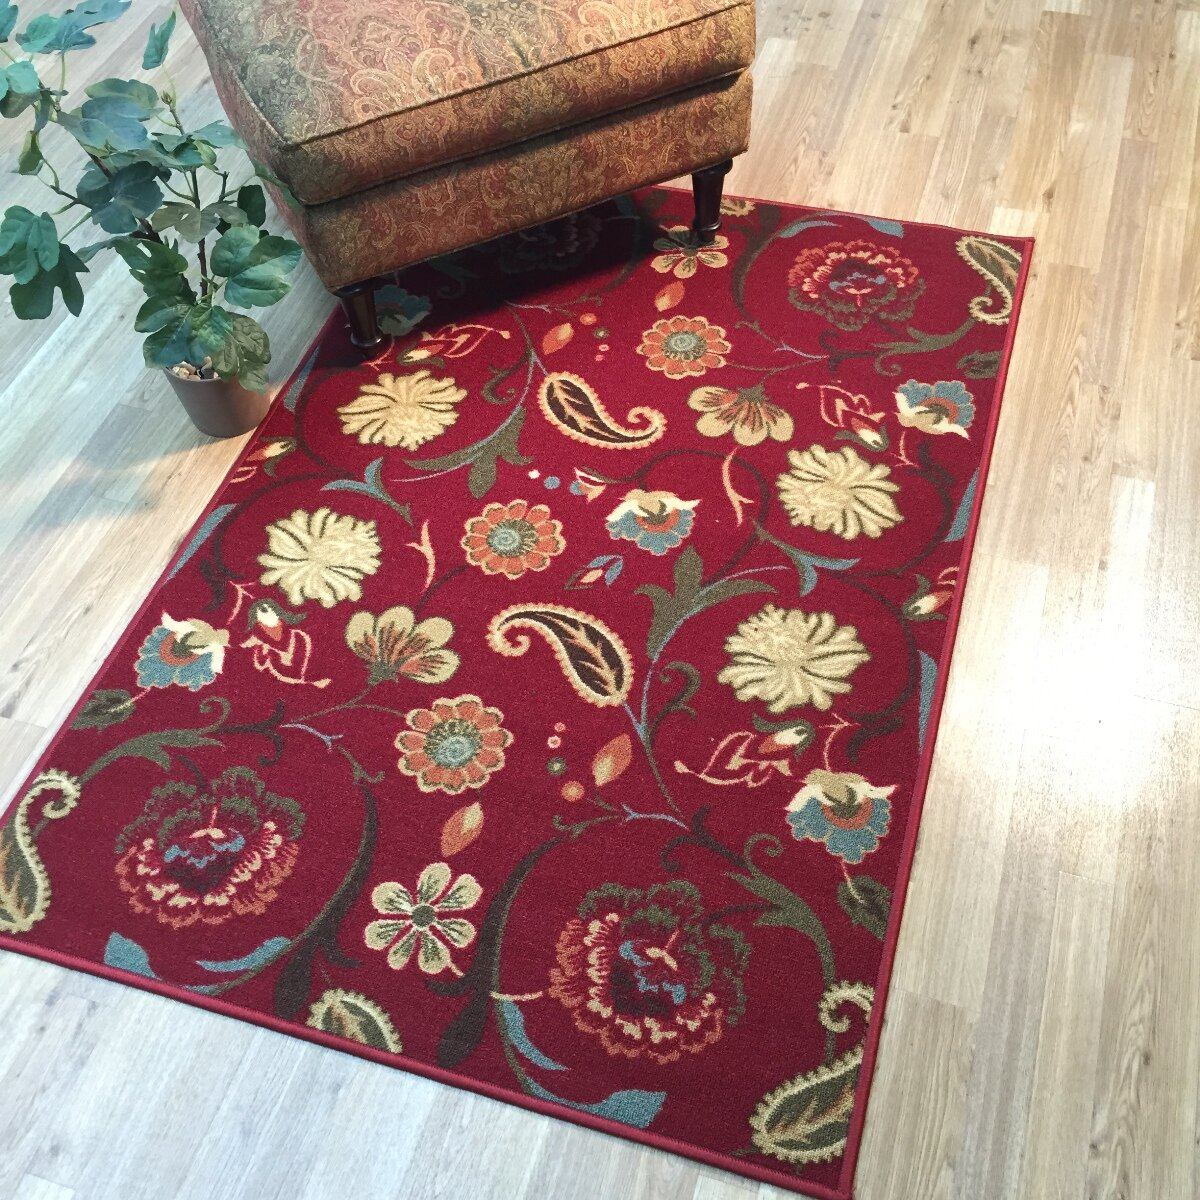 Rugnur hammam maxy home floral burgundy red area rug for Red floral area rug